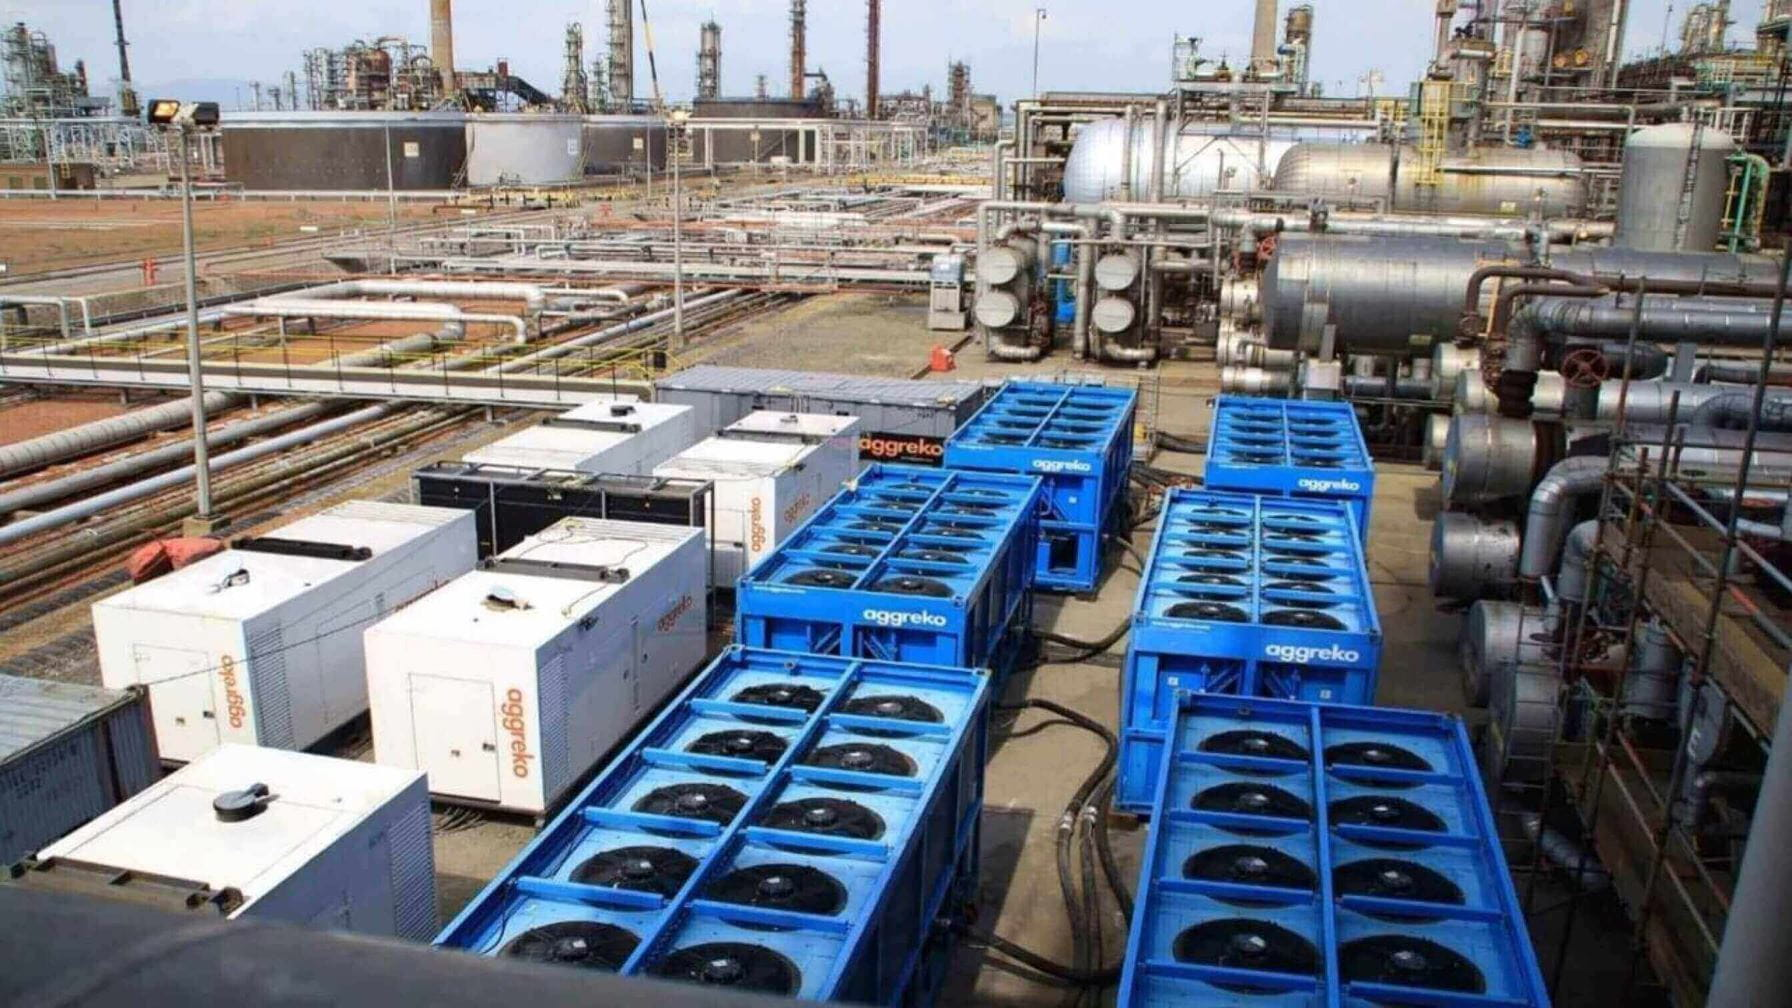 Desalter effluent water cooling preventing corrosion and shutdowns